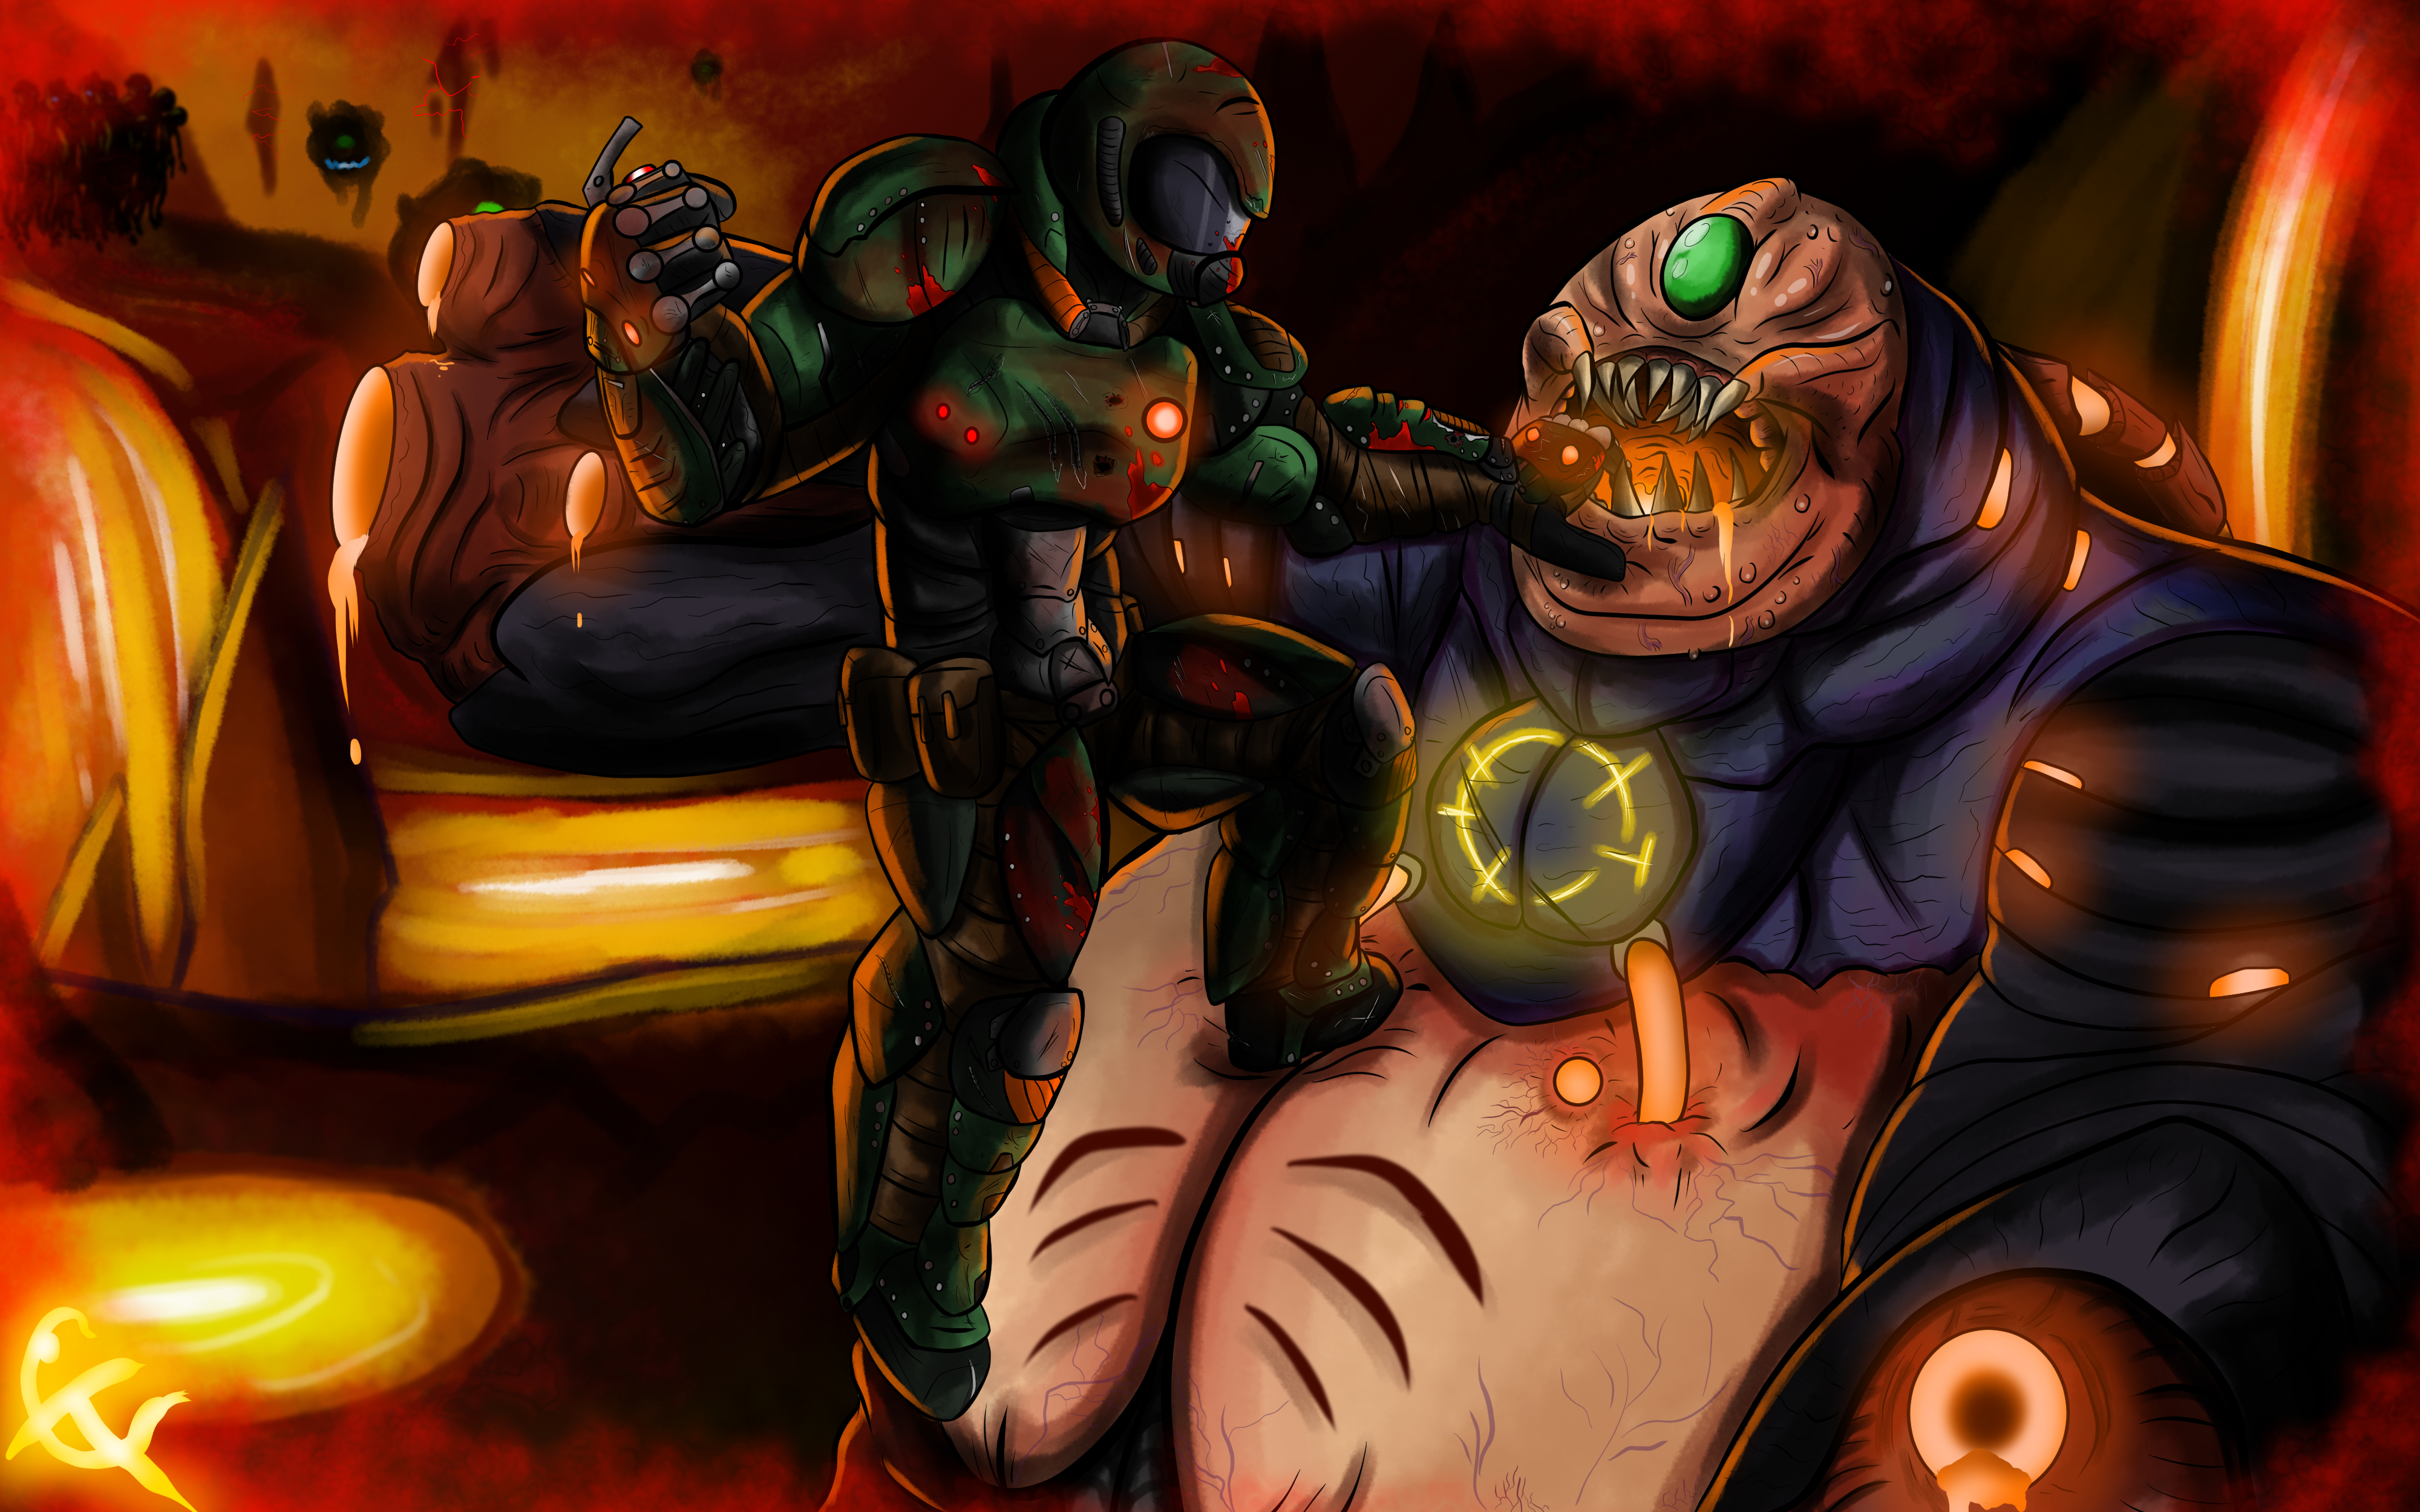 Perks At Work >> THE DOOM SLAYER by TheIcarusCrisis on Newgrounds